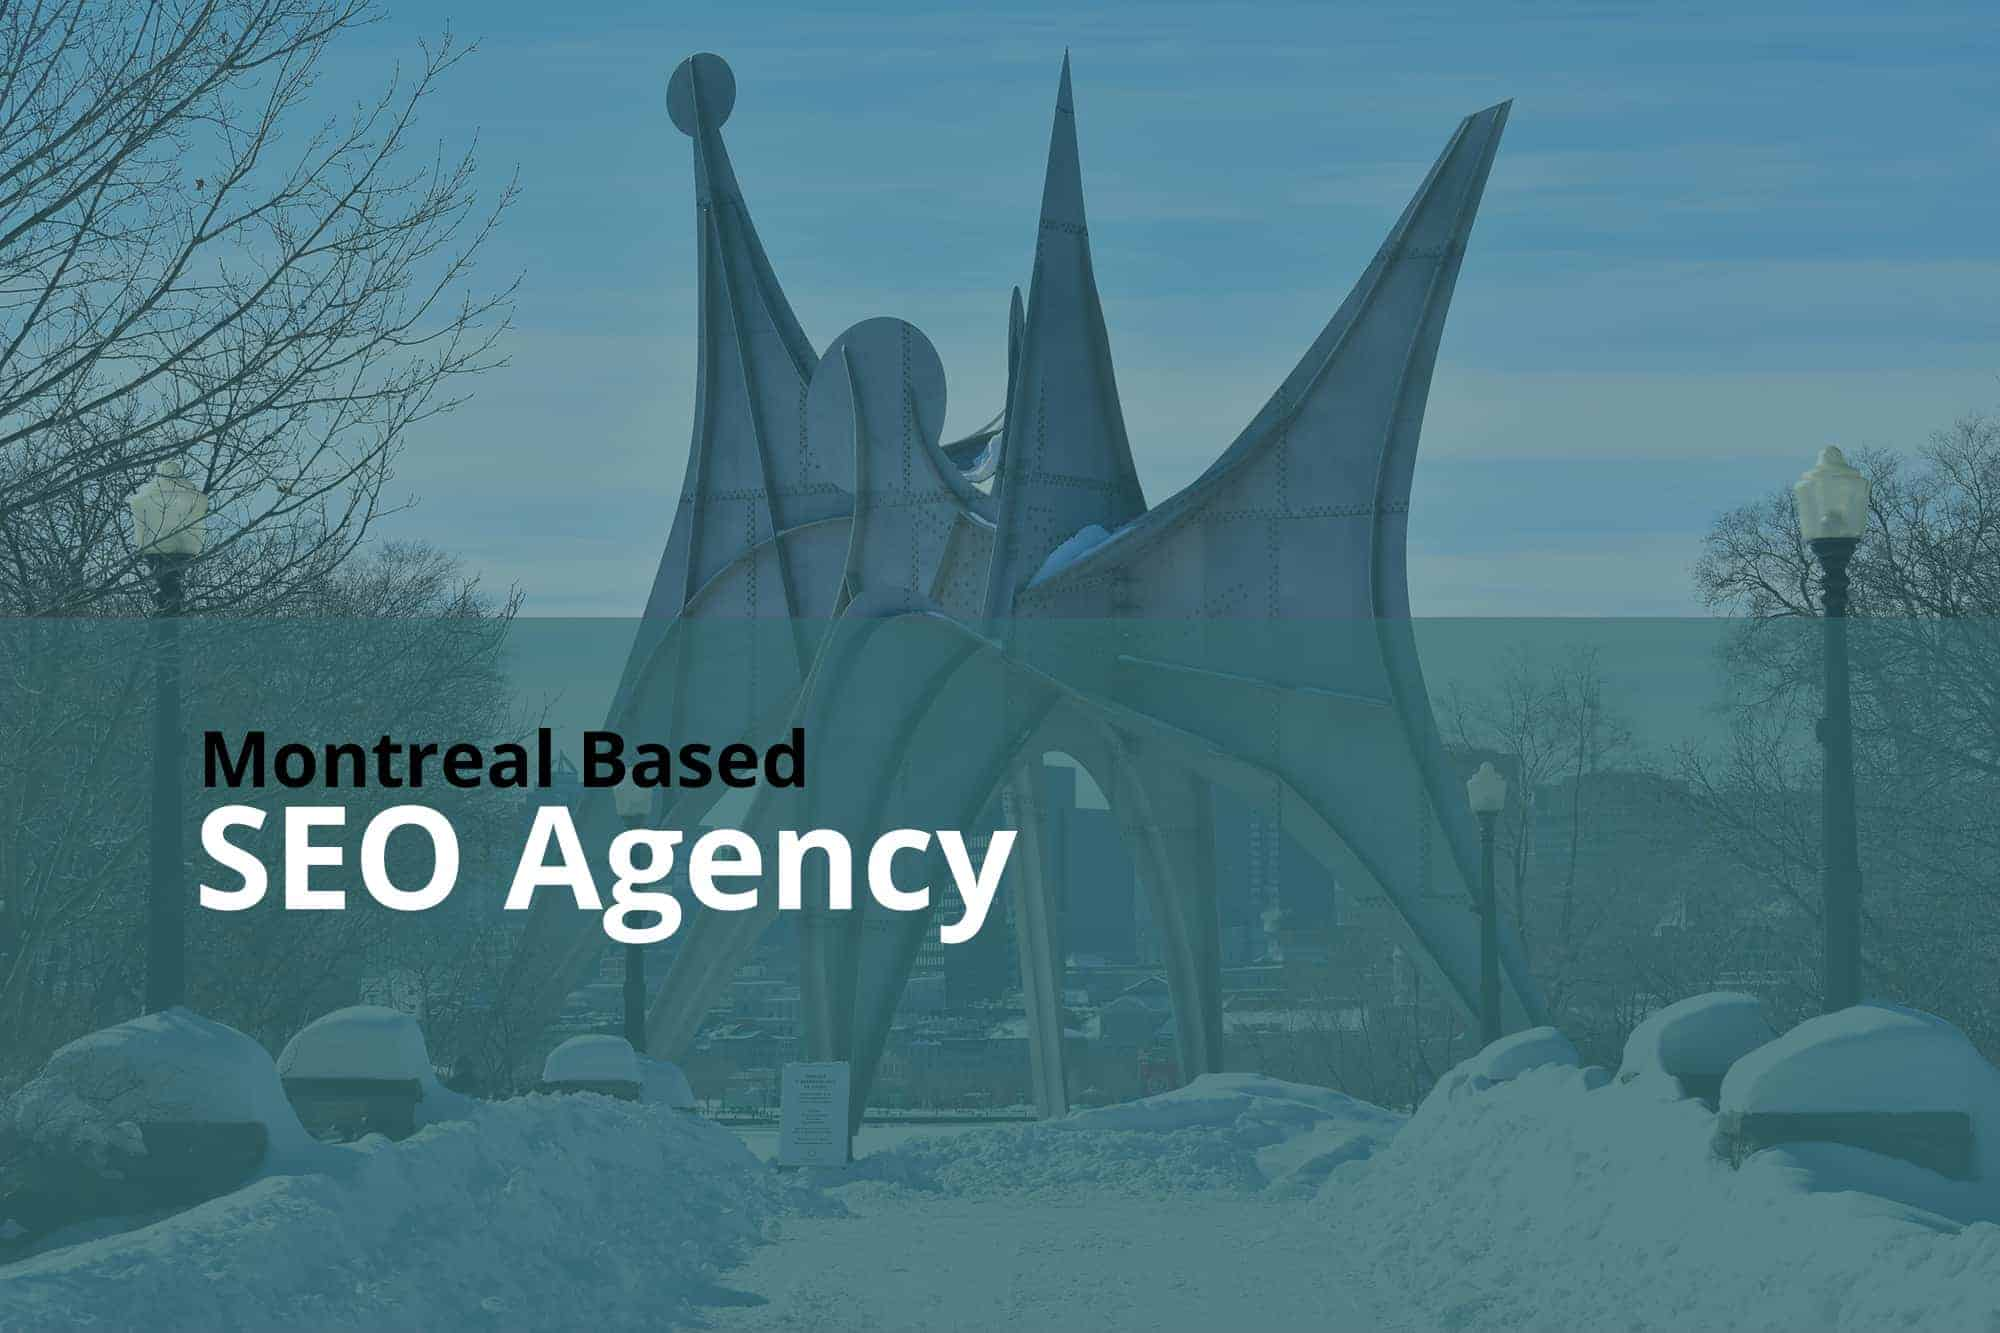 Montreal Based SEO Agency